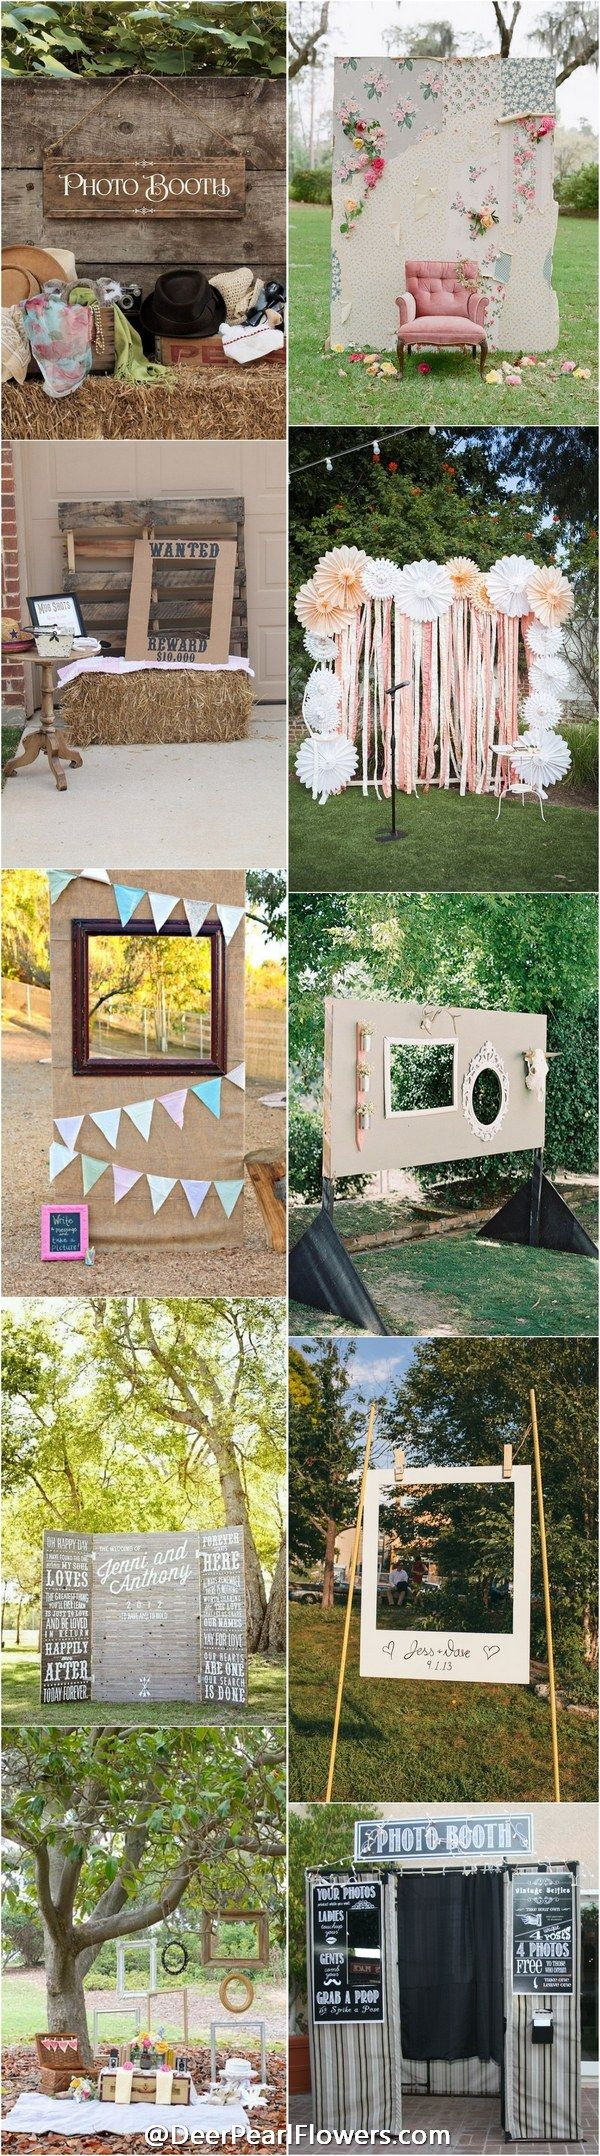 Wedding photo booth backdrop ideas - rustic country wedding ideas / http://www.deerpearlflowers.com/brilliant-wedding-photo-booth-ideas/